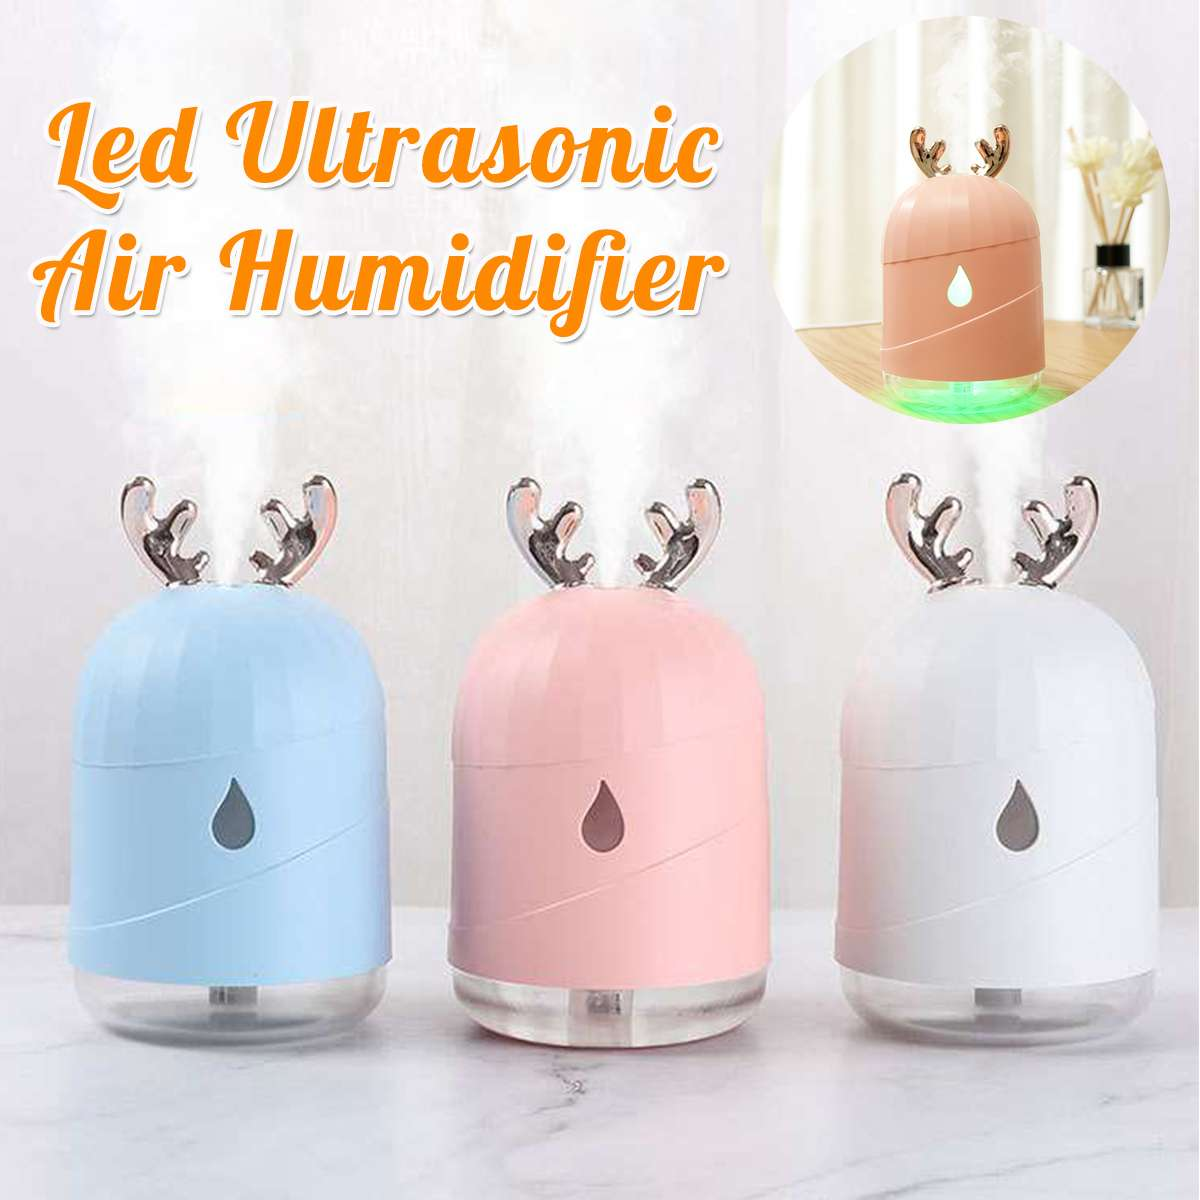 200ML Ultrasonic Air Humidifier Aroma Diffuser USB Desk Mini Humidifier For Home Car Travel With LED Night Light